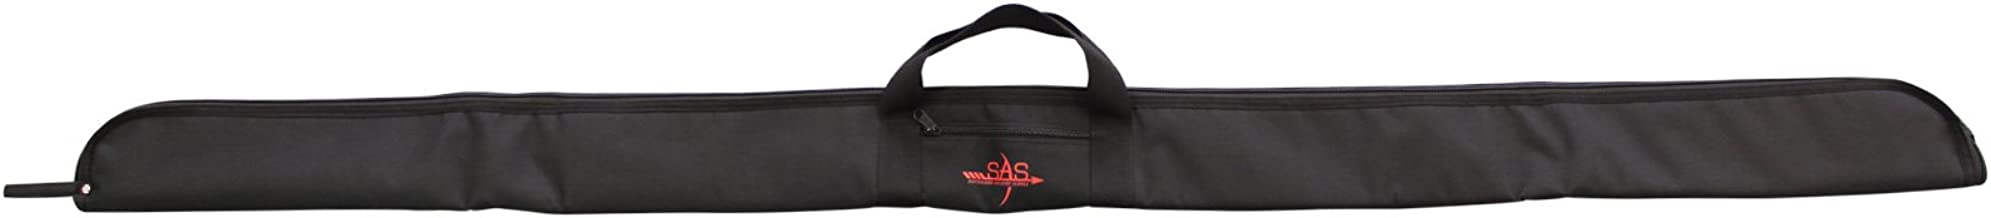 Southland Archery Supply SAS Long Traditional Bow Bag Case 4